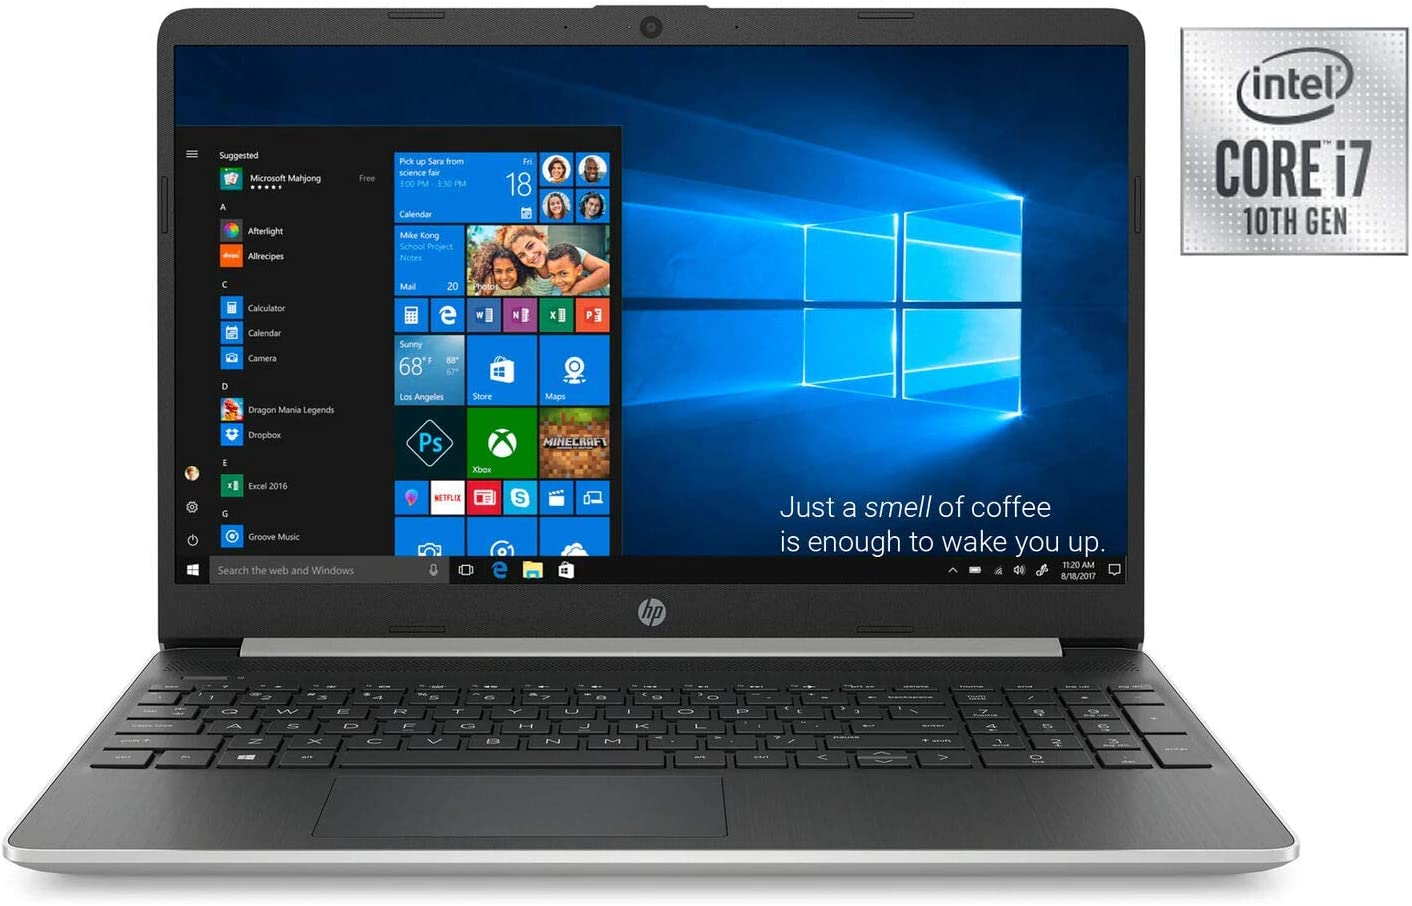 HP 15t Laptop PC 15.6 Inch HD WLED 256GB SSD + 16GB Intel Optane Laptop (i7-1065G7, 8GB RAM, Iris Plus Graphics, Windows 10 Home, Silver) 15-dy1071wm (Renewed)